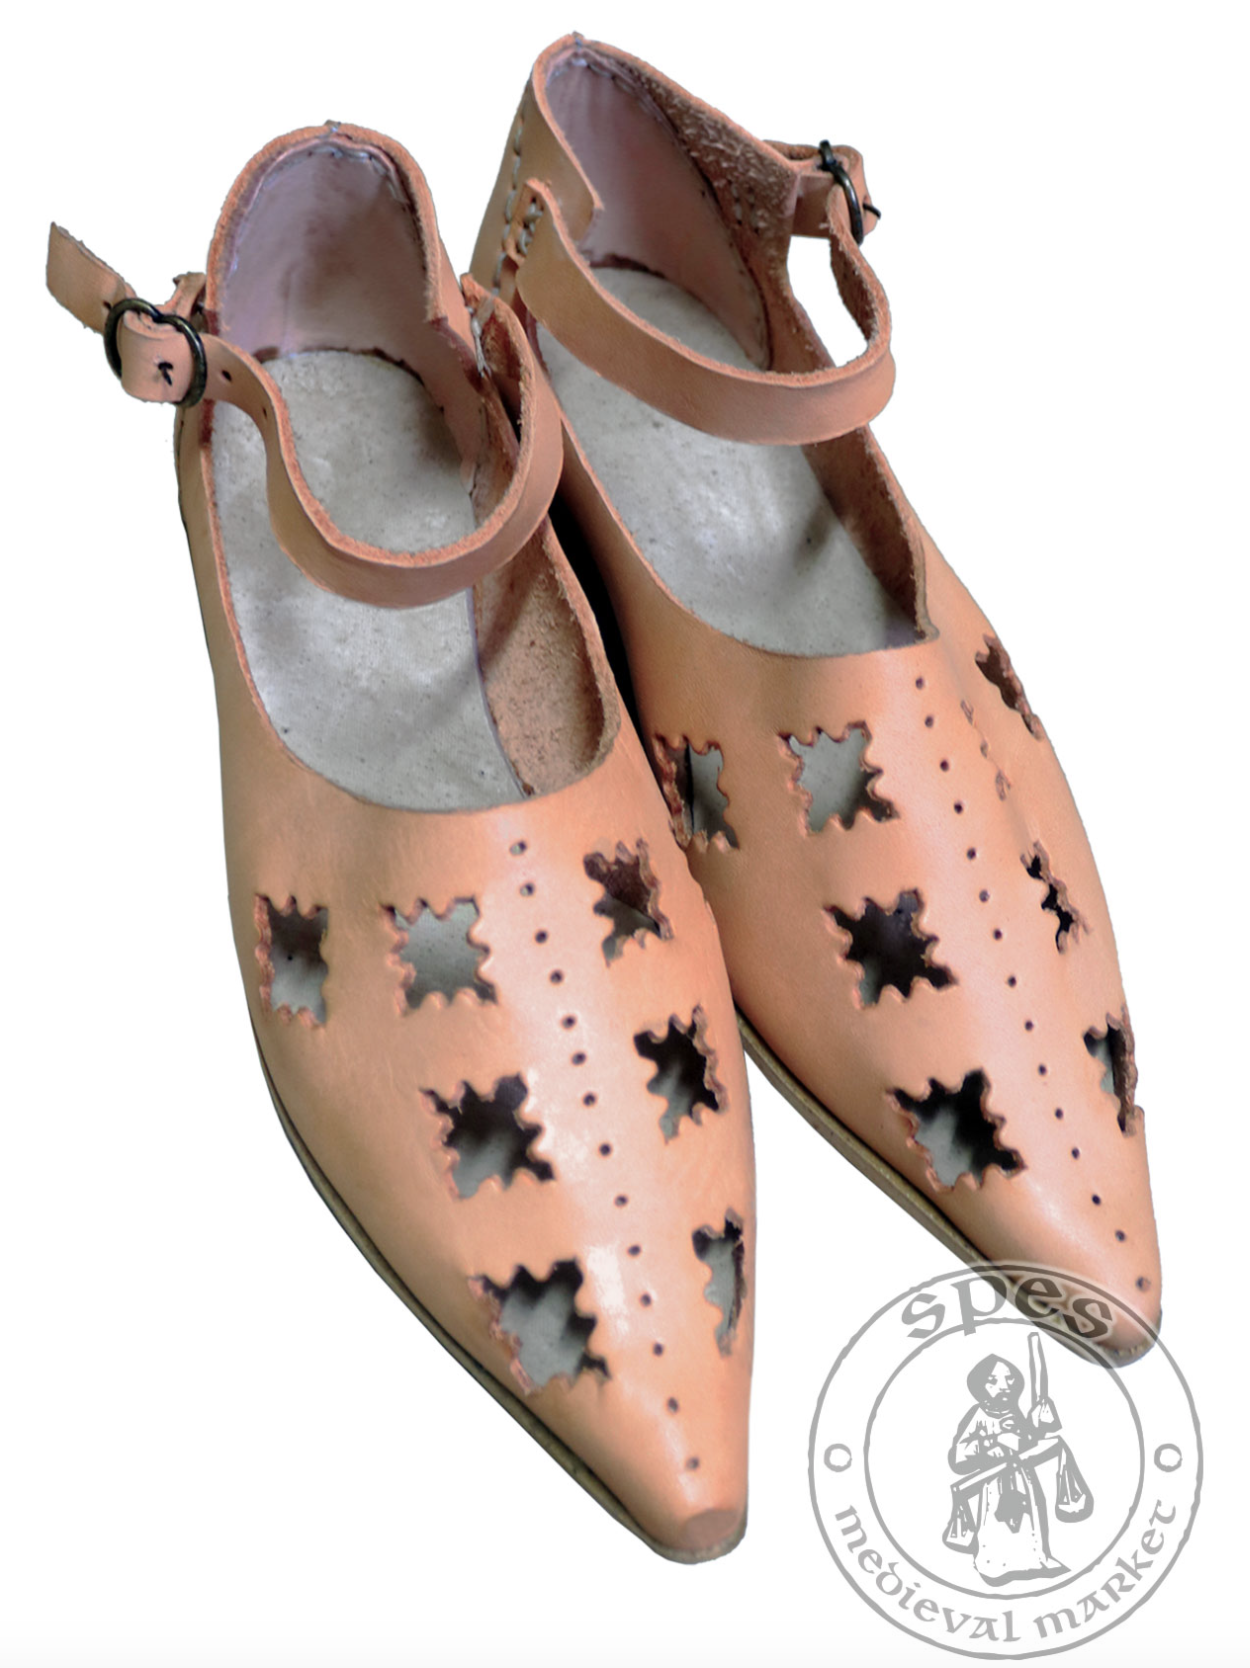 Chaussures Dame : KSR1399 - 150 €